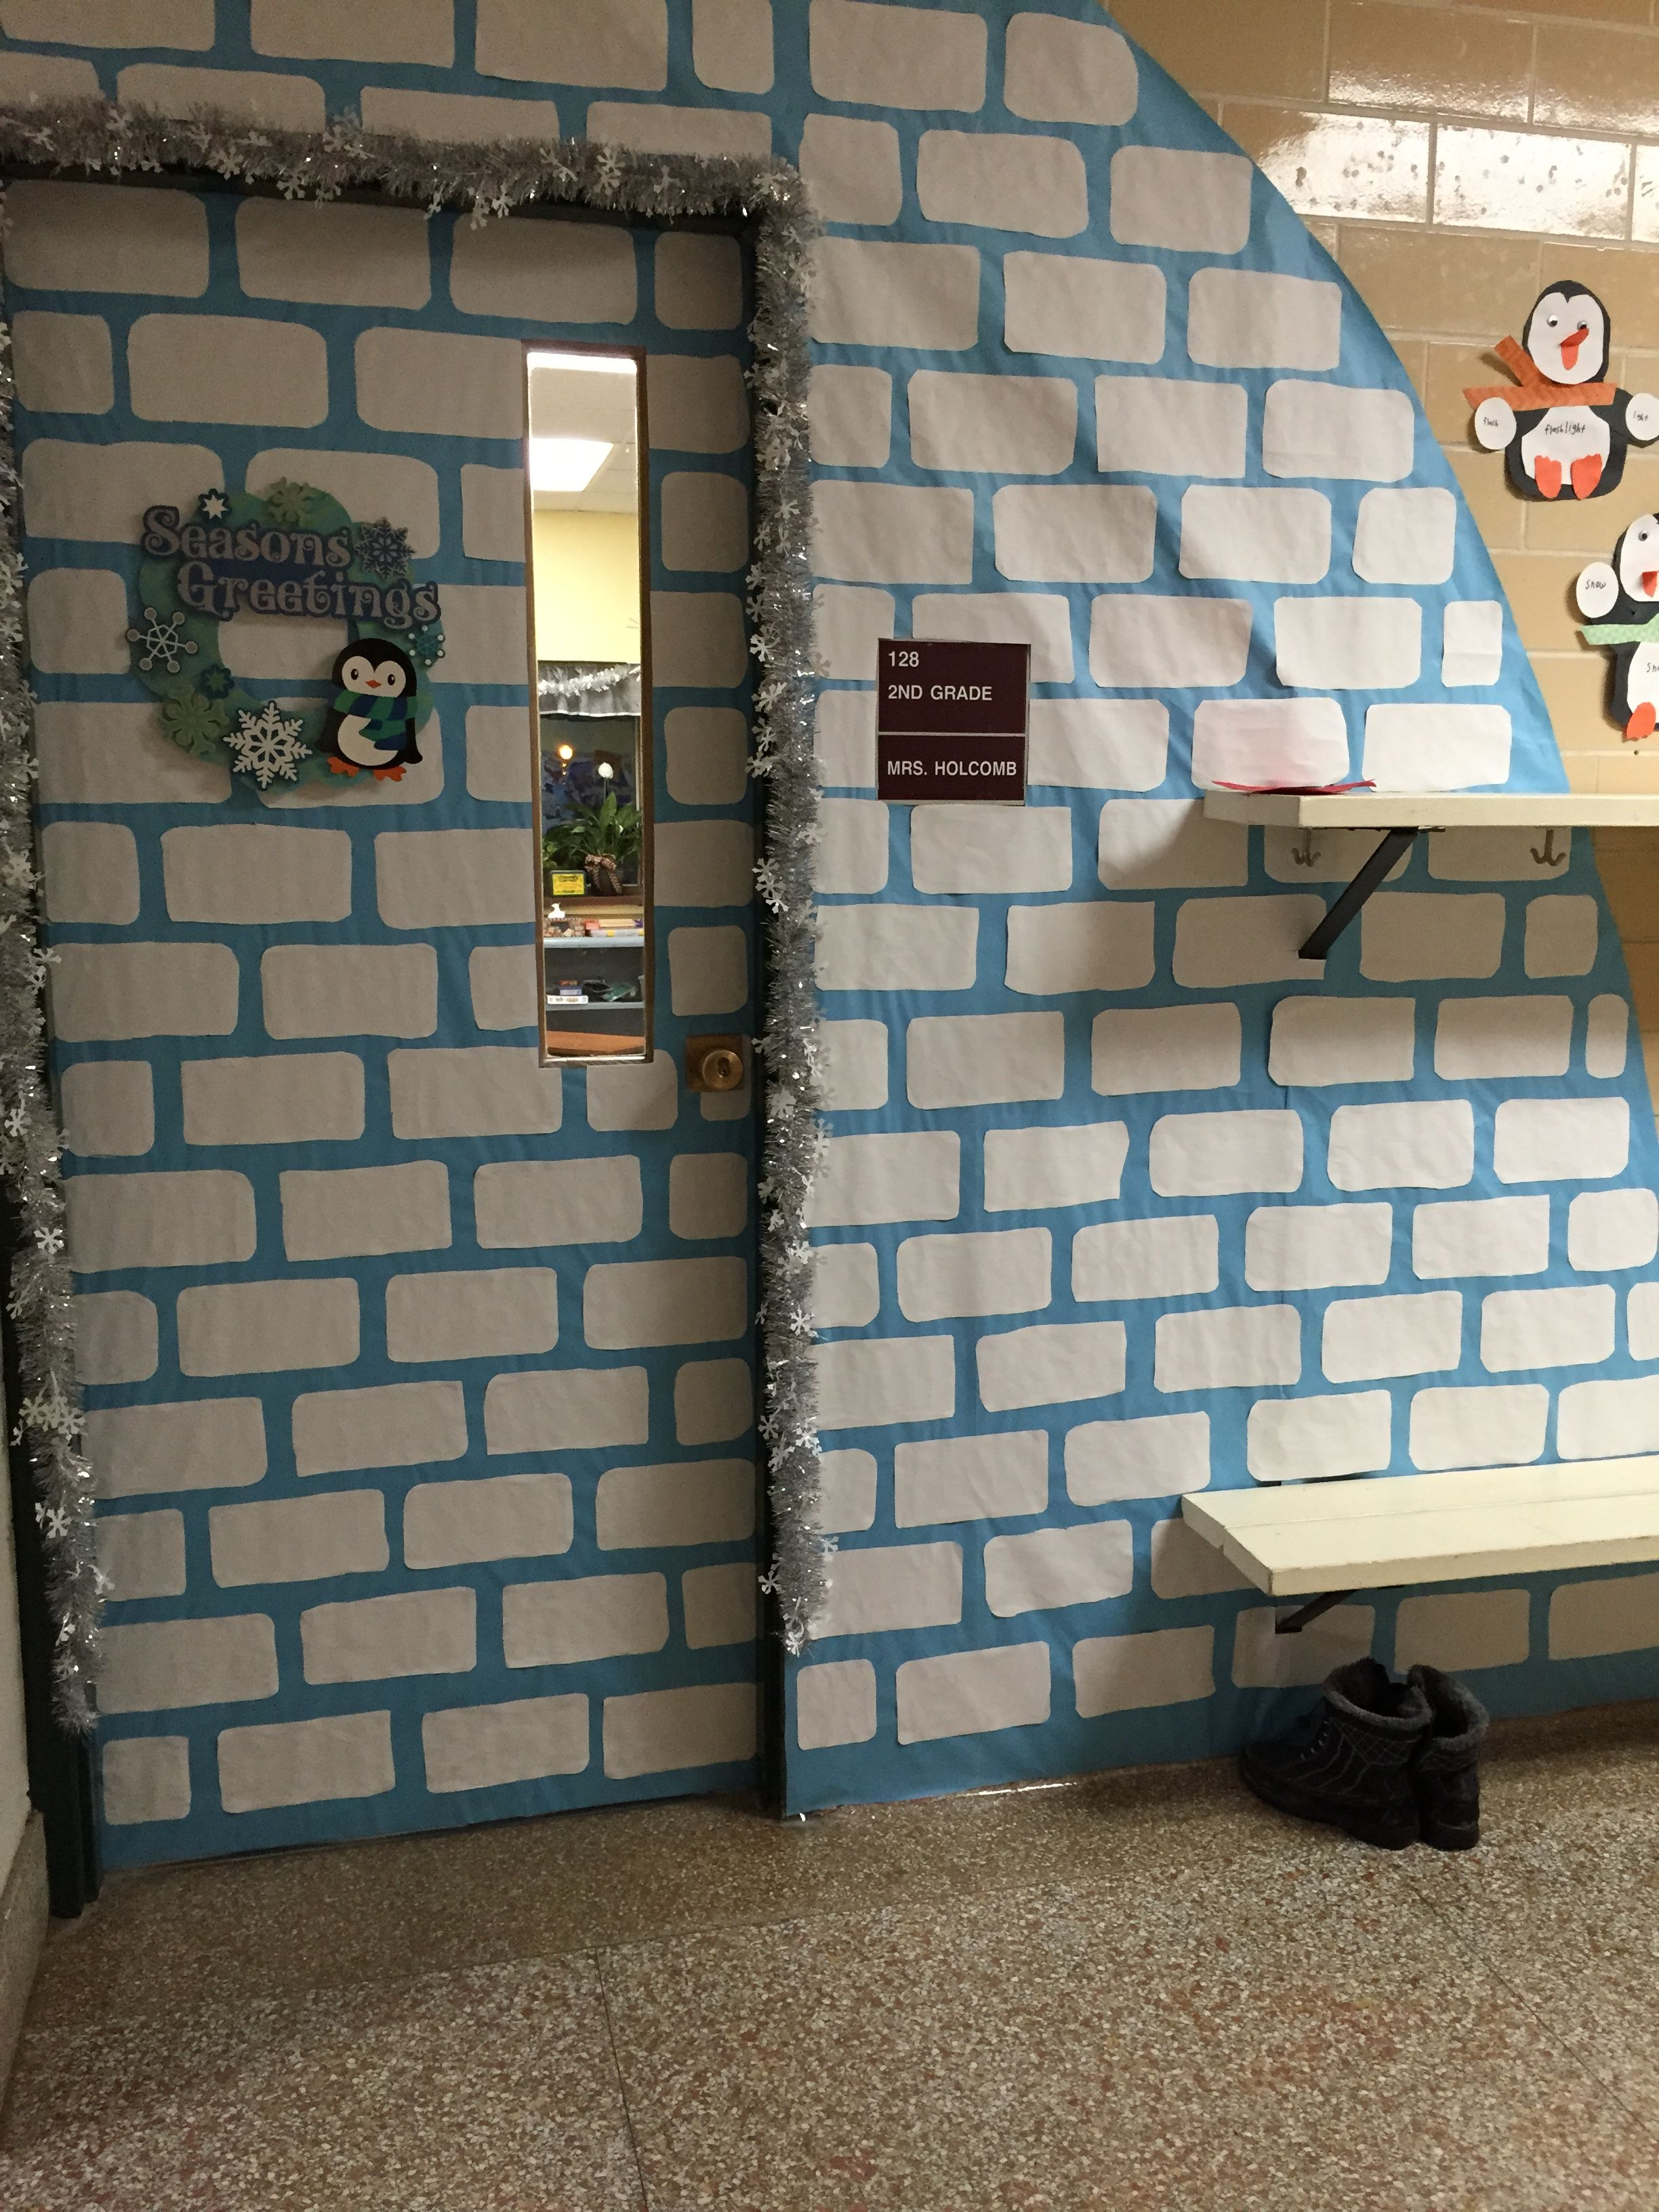 Classroom igloo door decoration for the winter season ...